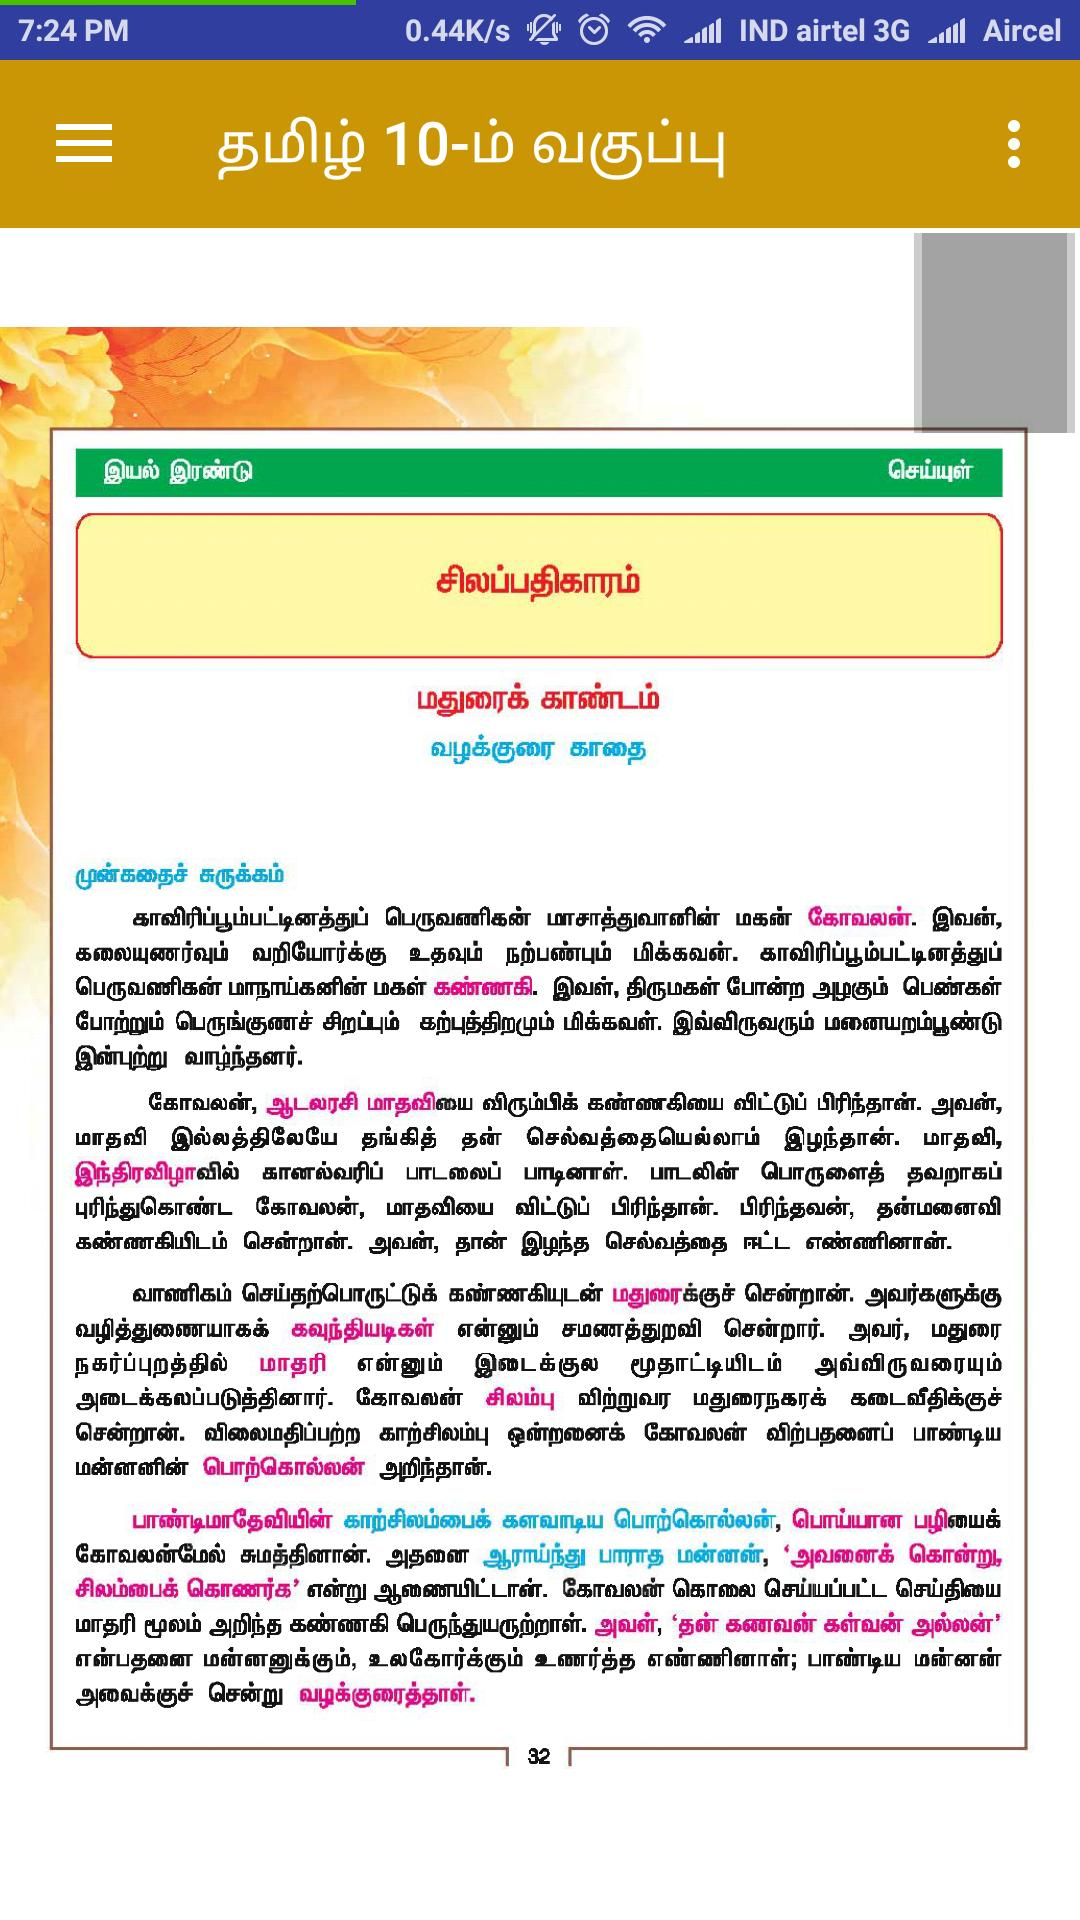 TamilNadu 10th Tamil Book for Android - APK Download